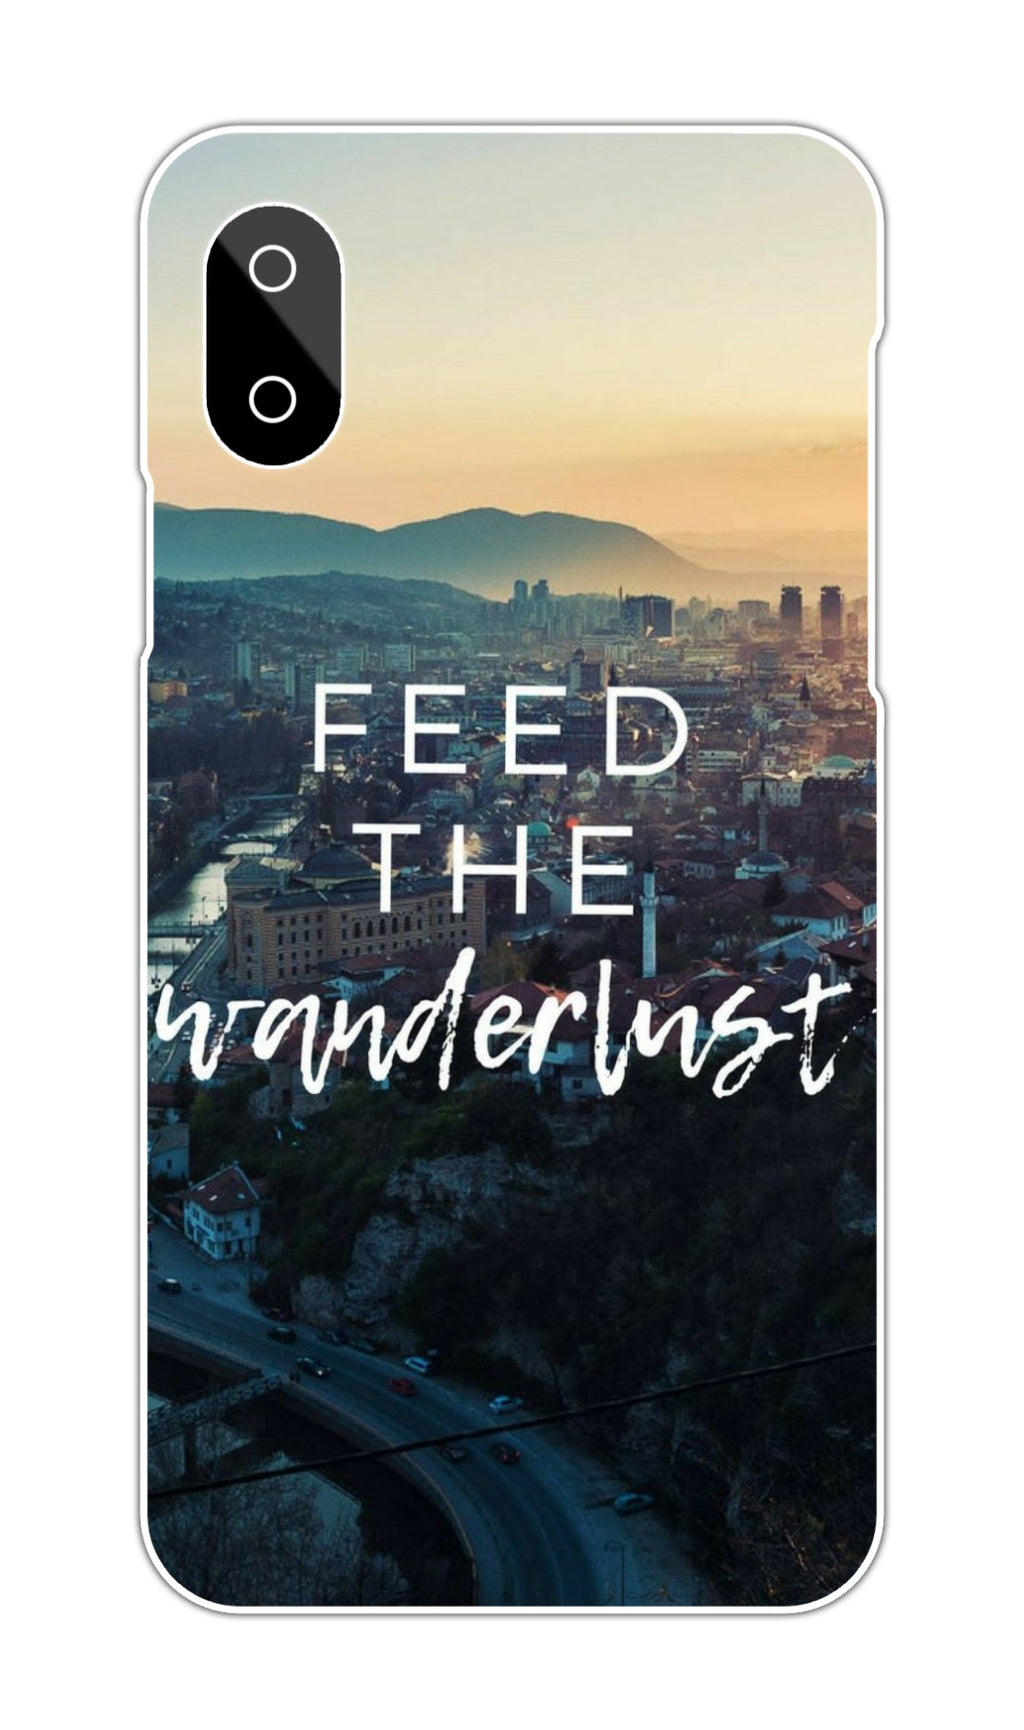 FEED THE WANDERLUST QUOTE CASE